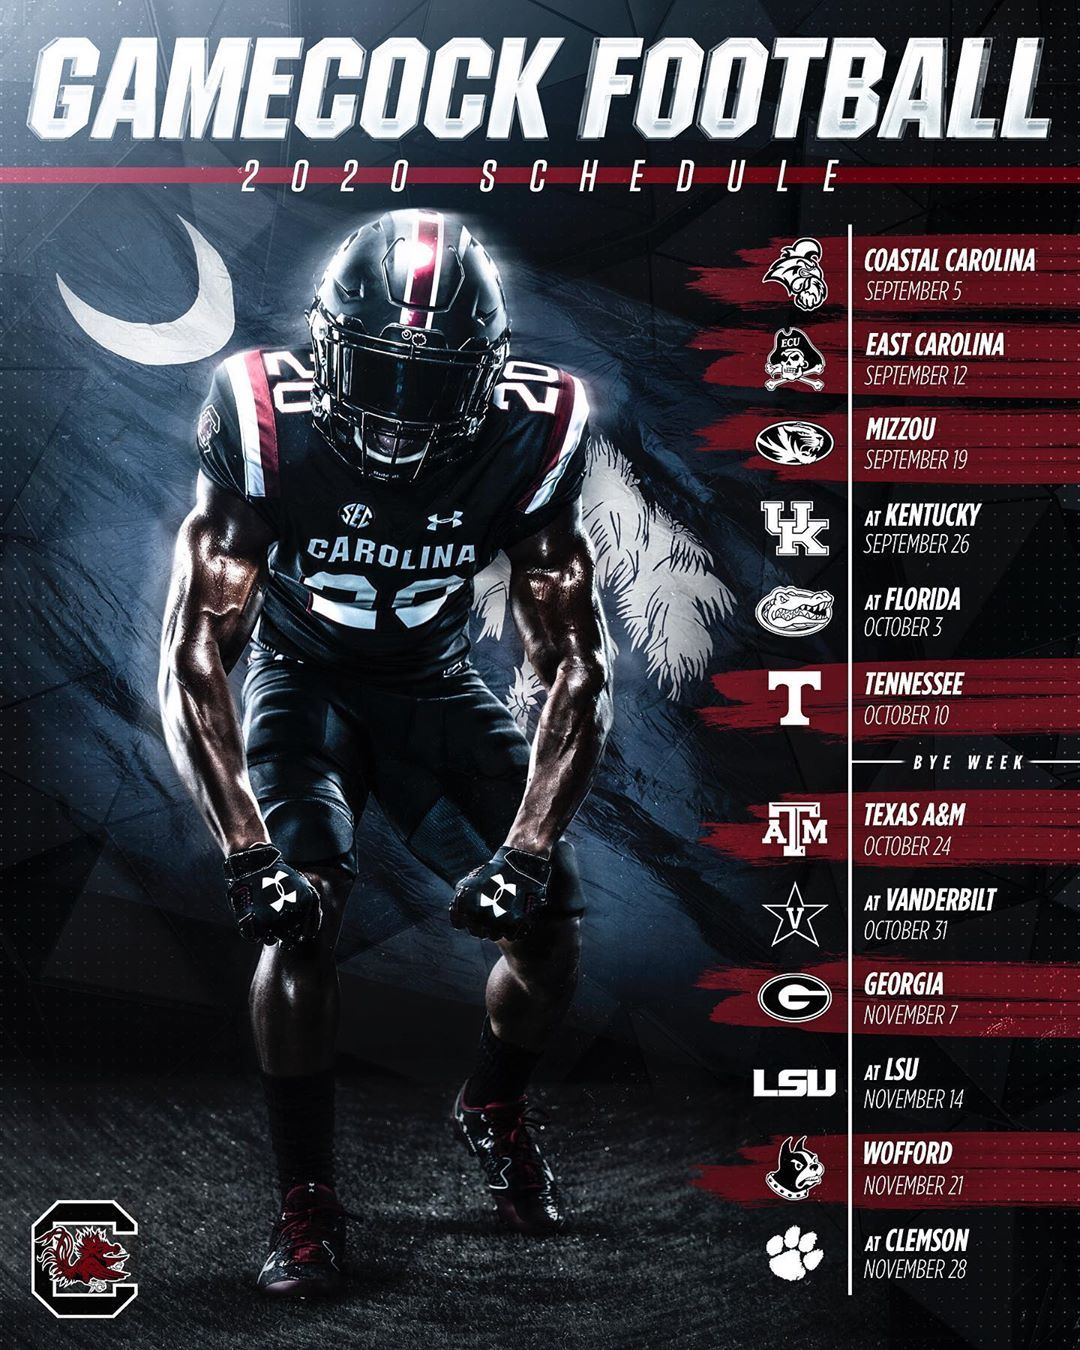 Gamecock Football On Instagram The 2020 Schedule Is Here Gamecocks Football Gamecocks Carolina Football